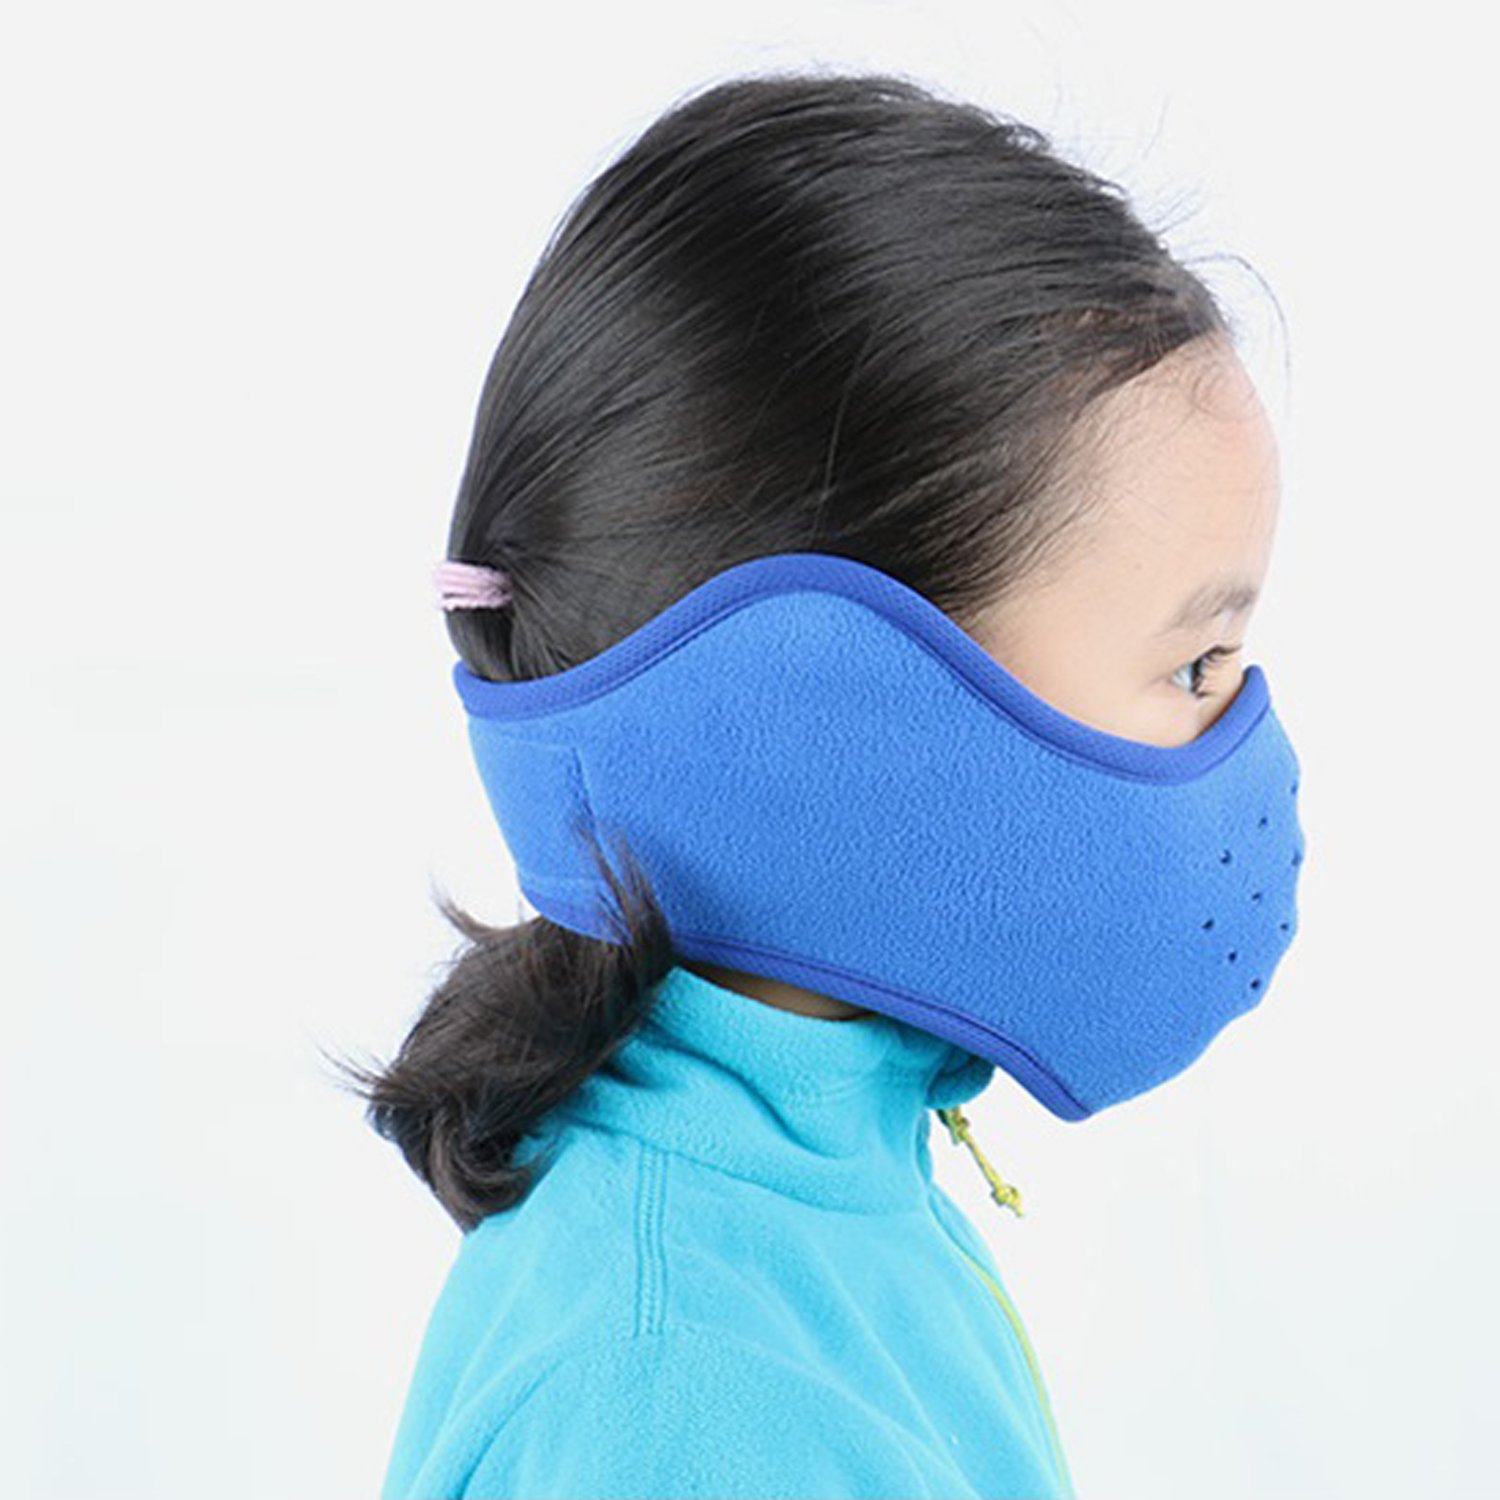 MIFULGOO Kids Reversible Fleece Half Ski Face Mask Winter Ear Warmer Vent Hole